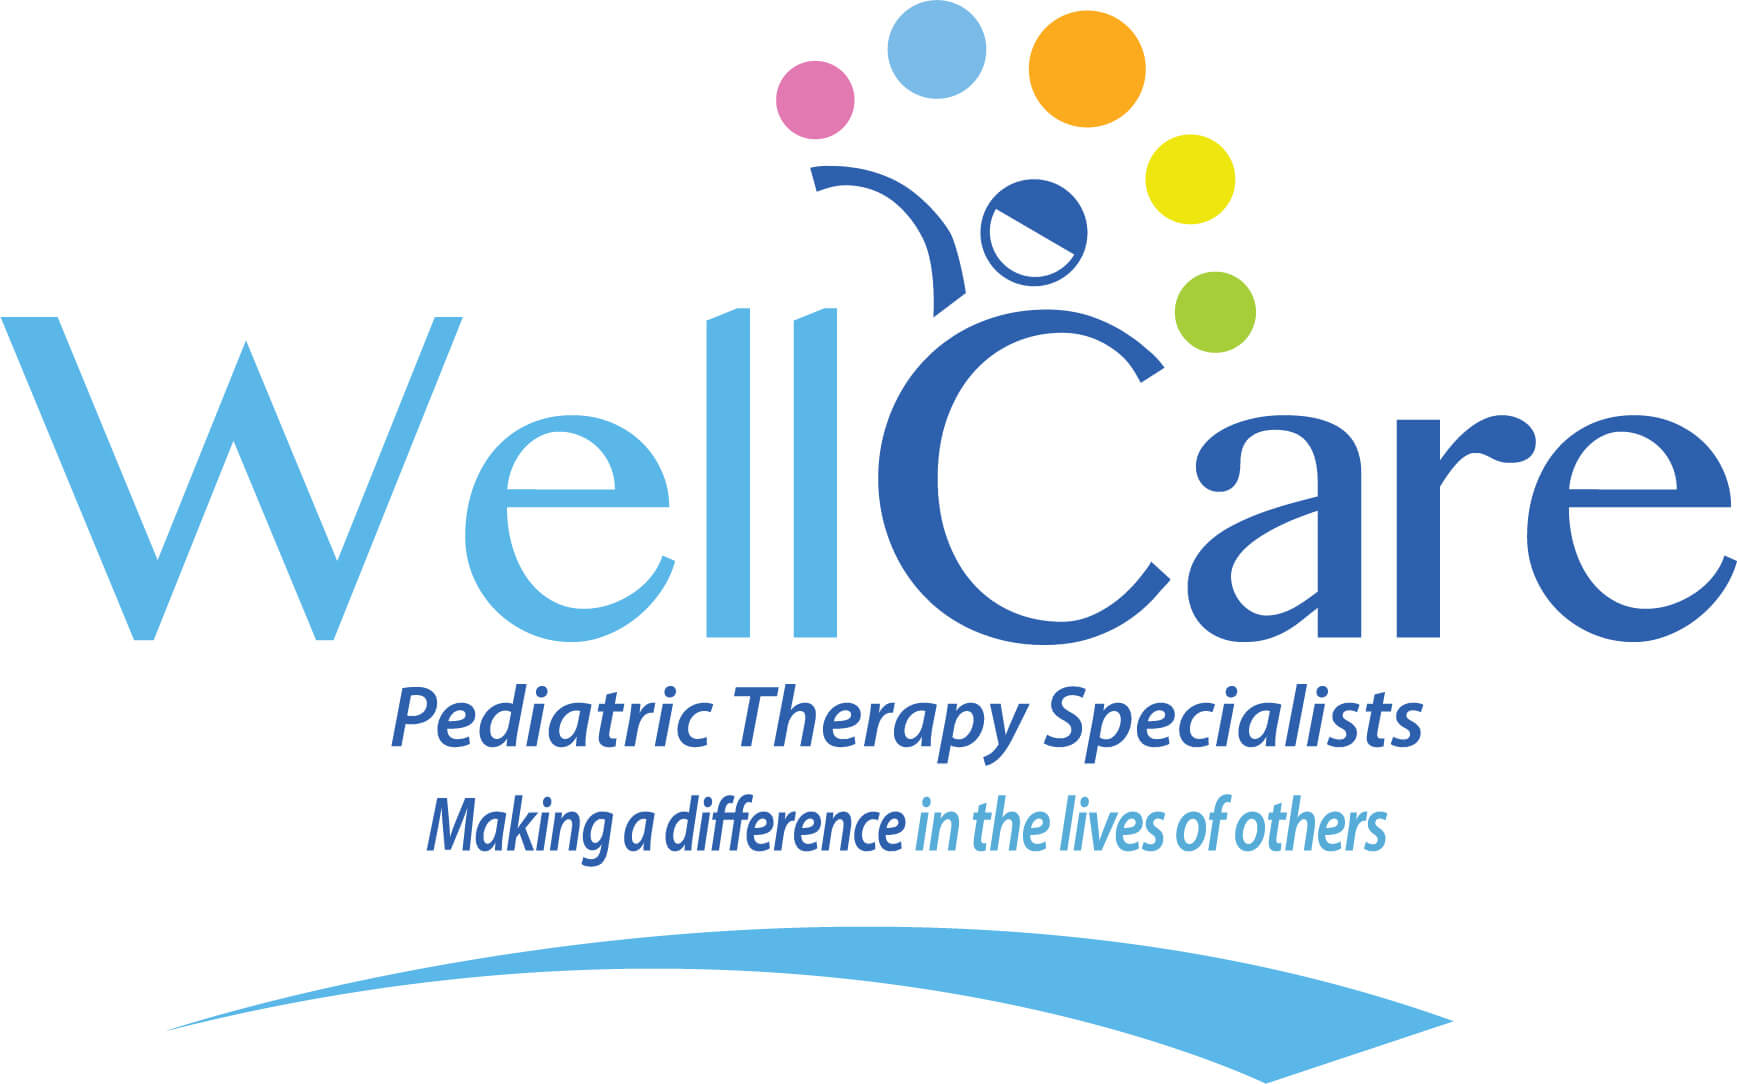 Wellcare Pediatric Therapy Specialists Making a difference